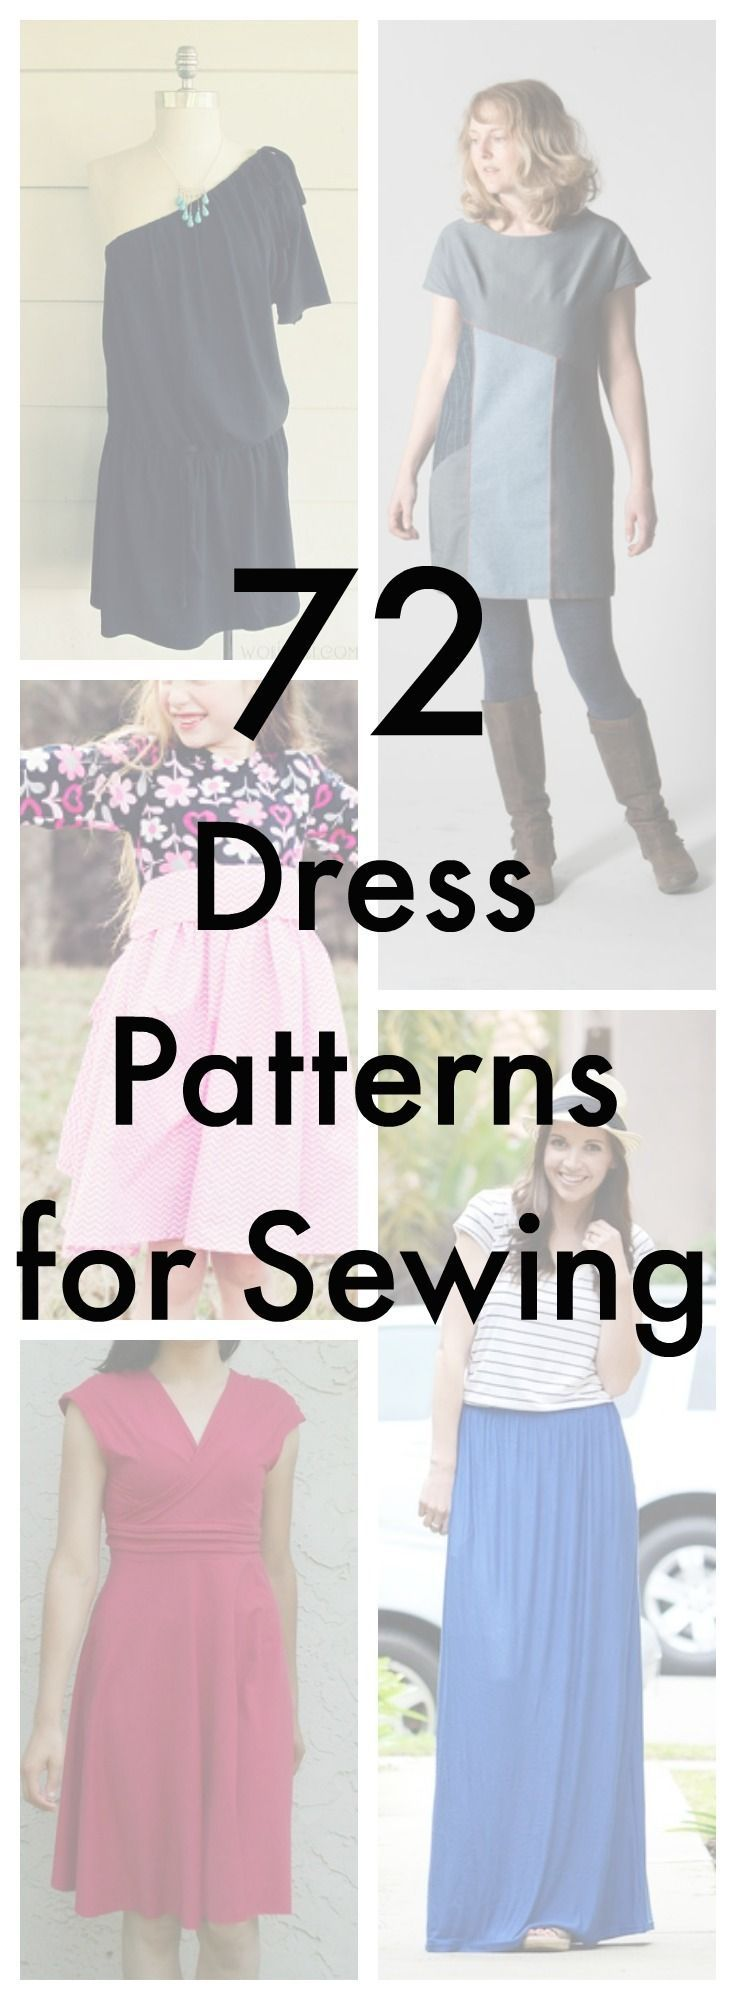 Best Free Online PDF Sewing Patterns | Downloadable Sewing Patterns